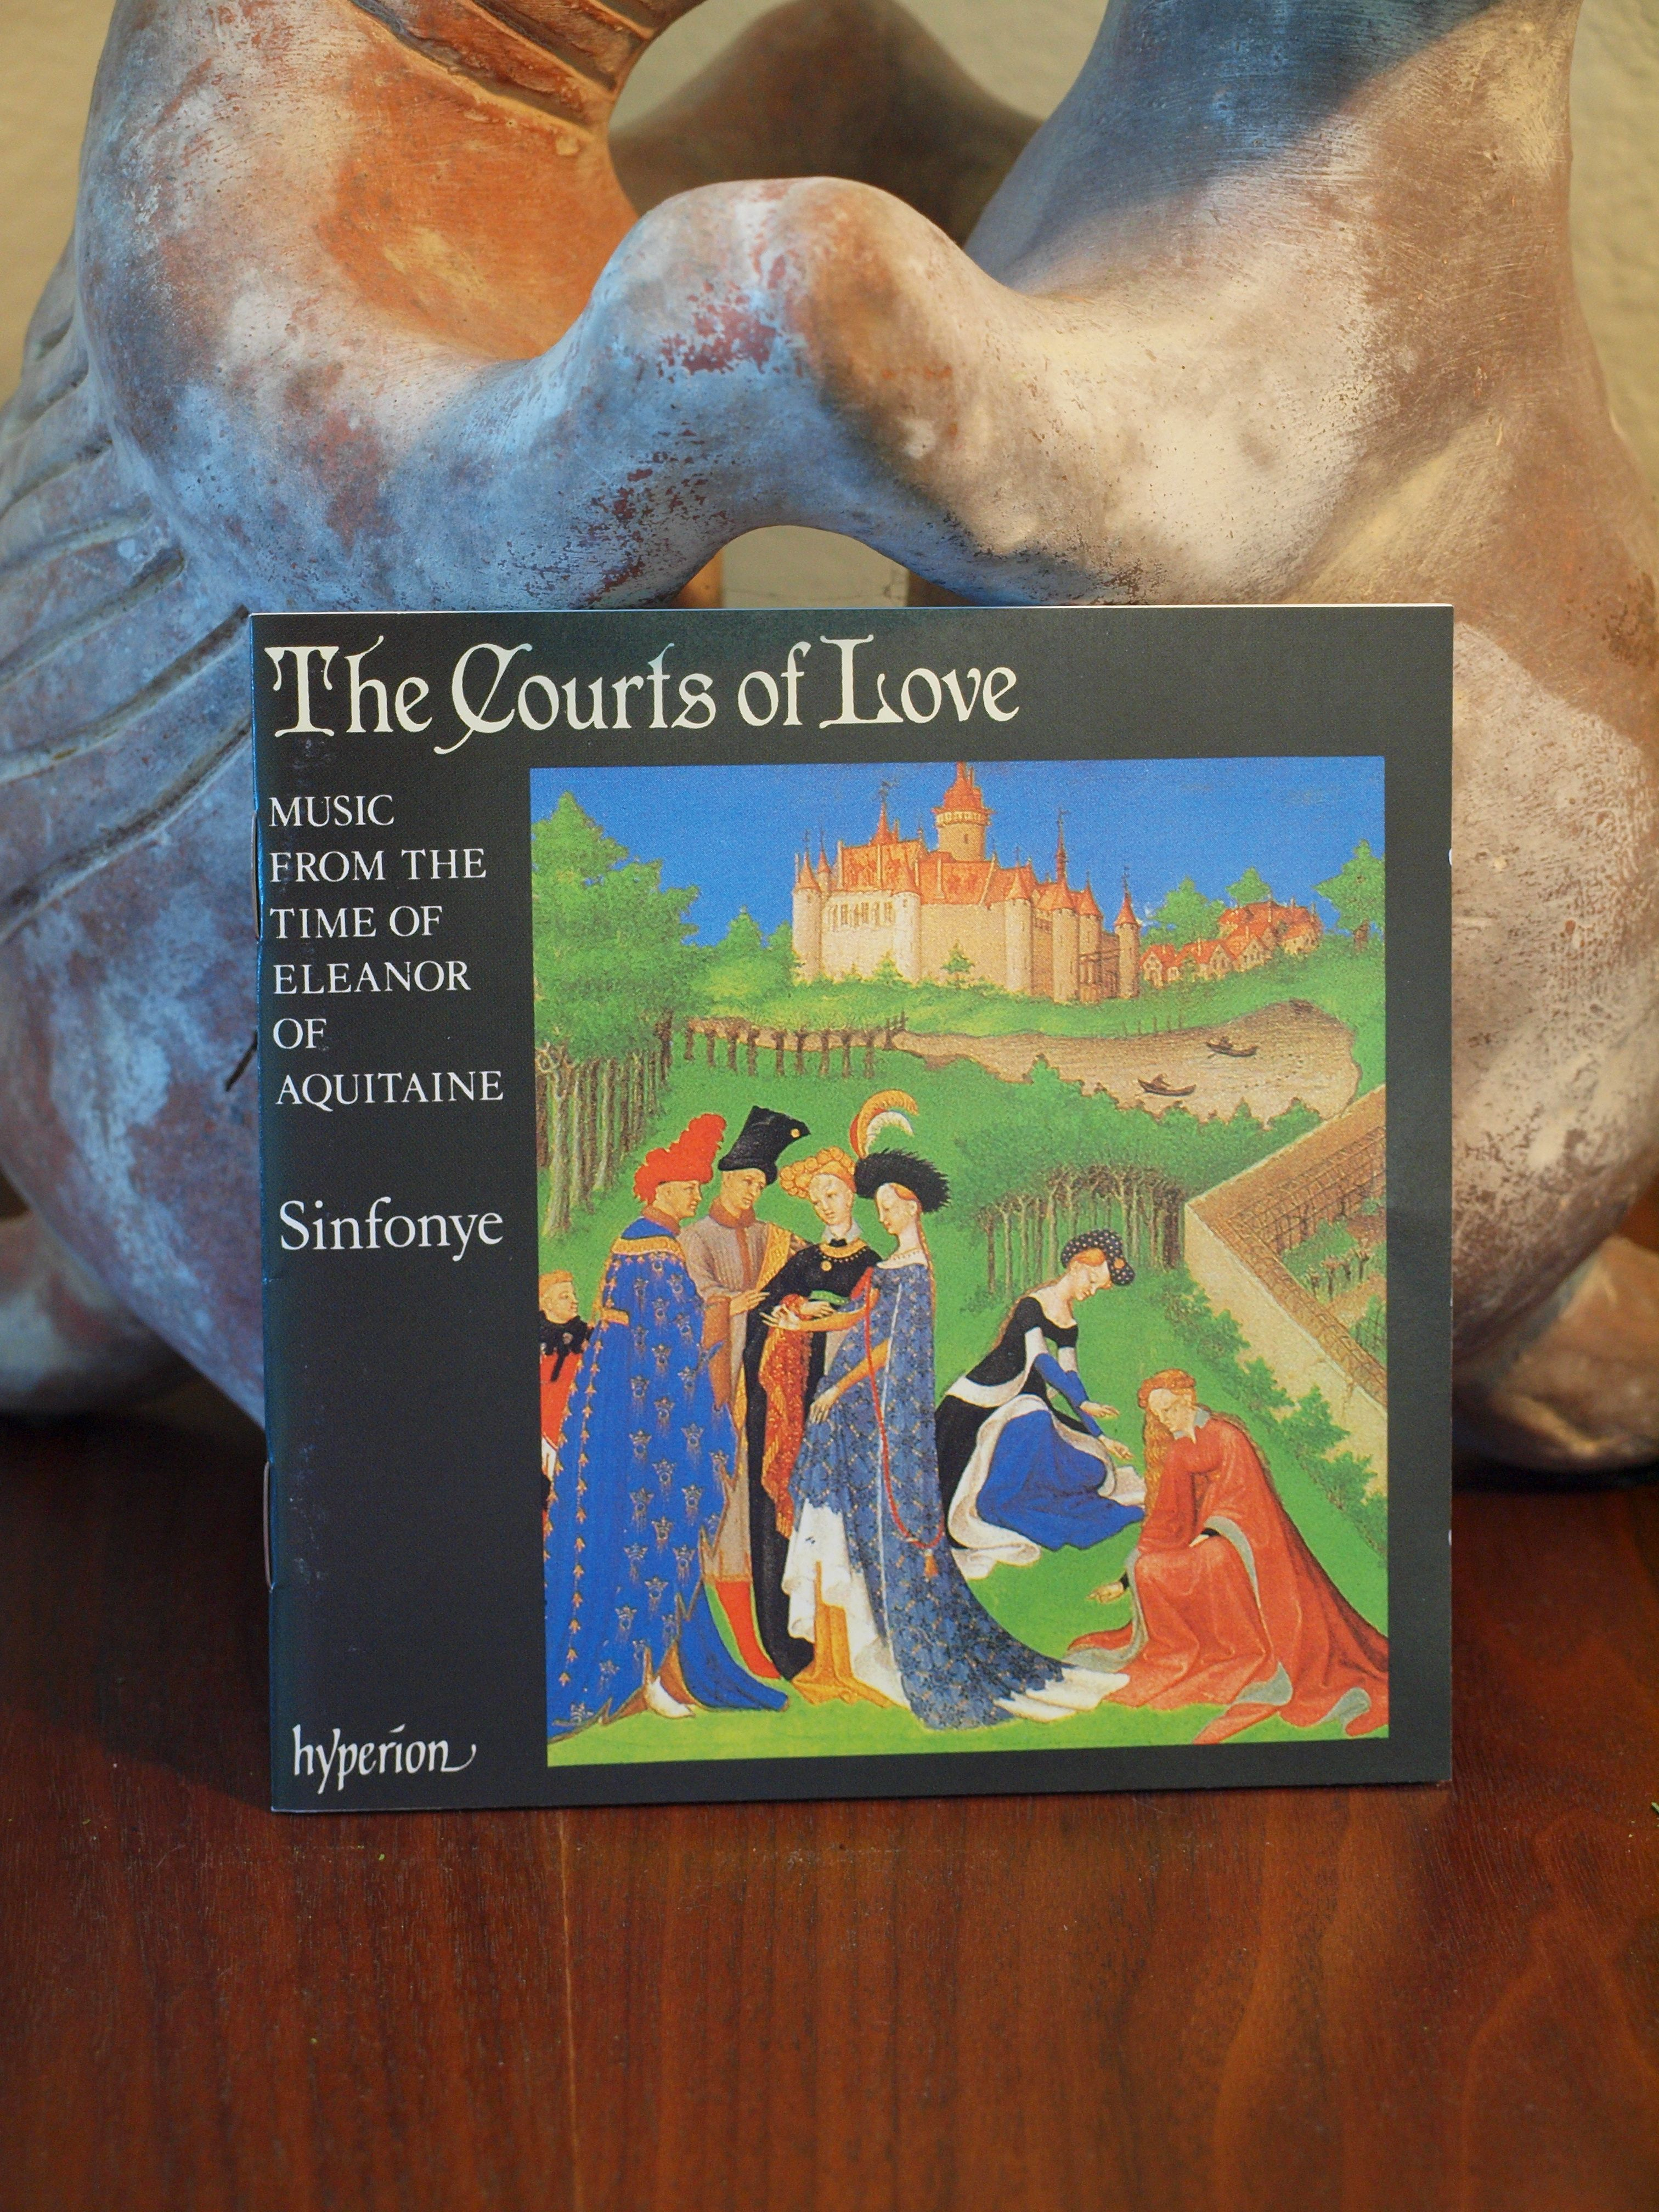 Sinfonye - The Courts Of Love - Music From The Time Of Eleanor Of Aquitane